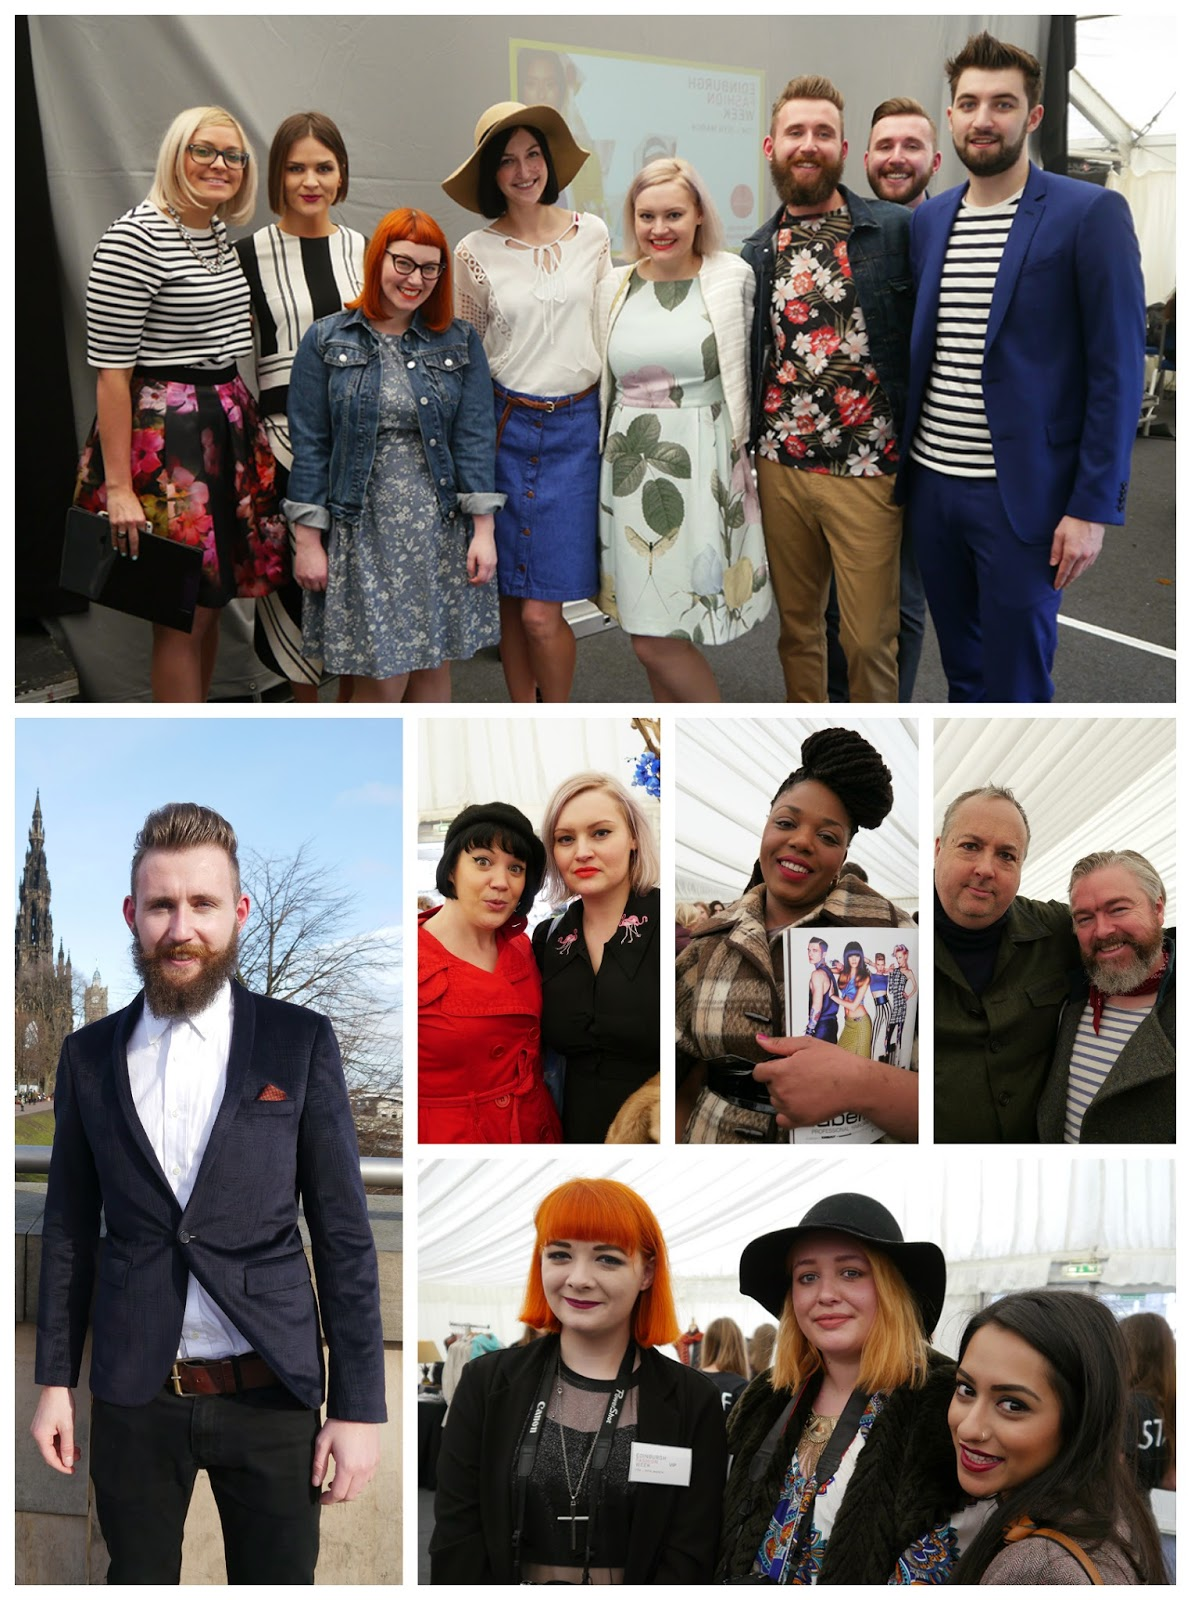 Edinburgh Fashion Week, Scottish Bloggers, #EdFashionWeek, Edinburgh, Scottish Fashion, Satisfashion, Secret Little Stars, Yelp Edinburgh, Scot Street Style, Illamasqua, Frankly Miss Shankly, Is It Vintage, Sultana Malik, Love From Lou Lou, The Keenan One, skittlisfashion